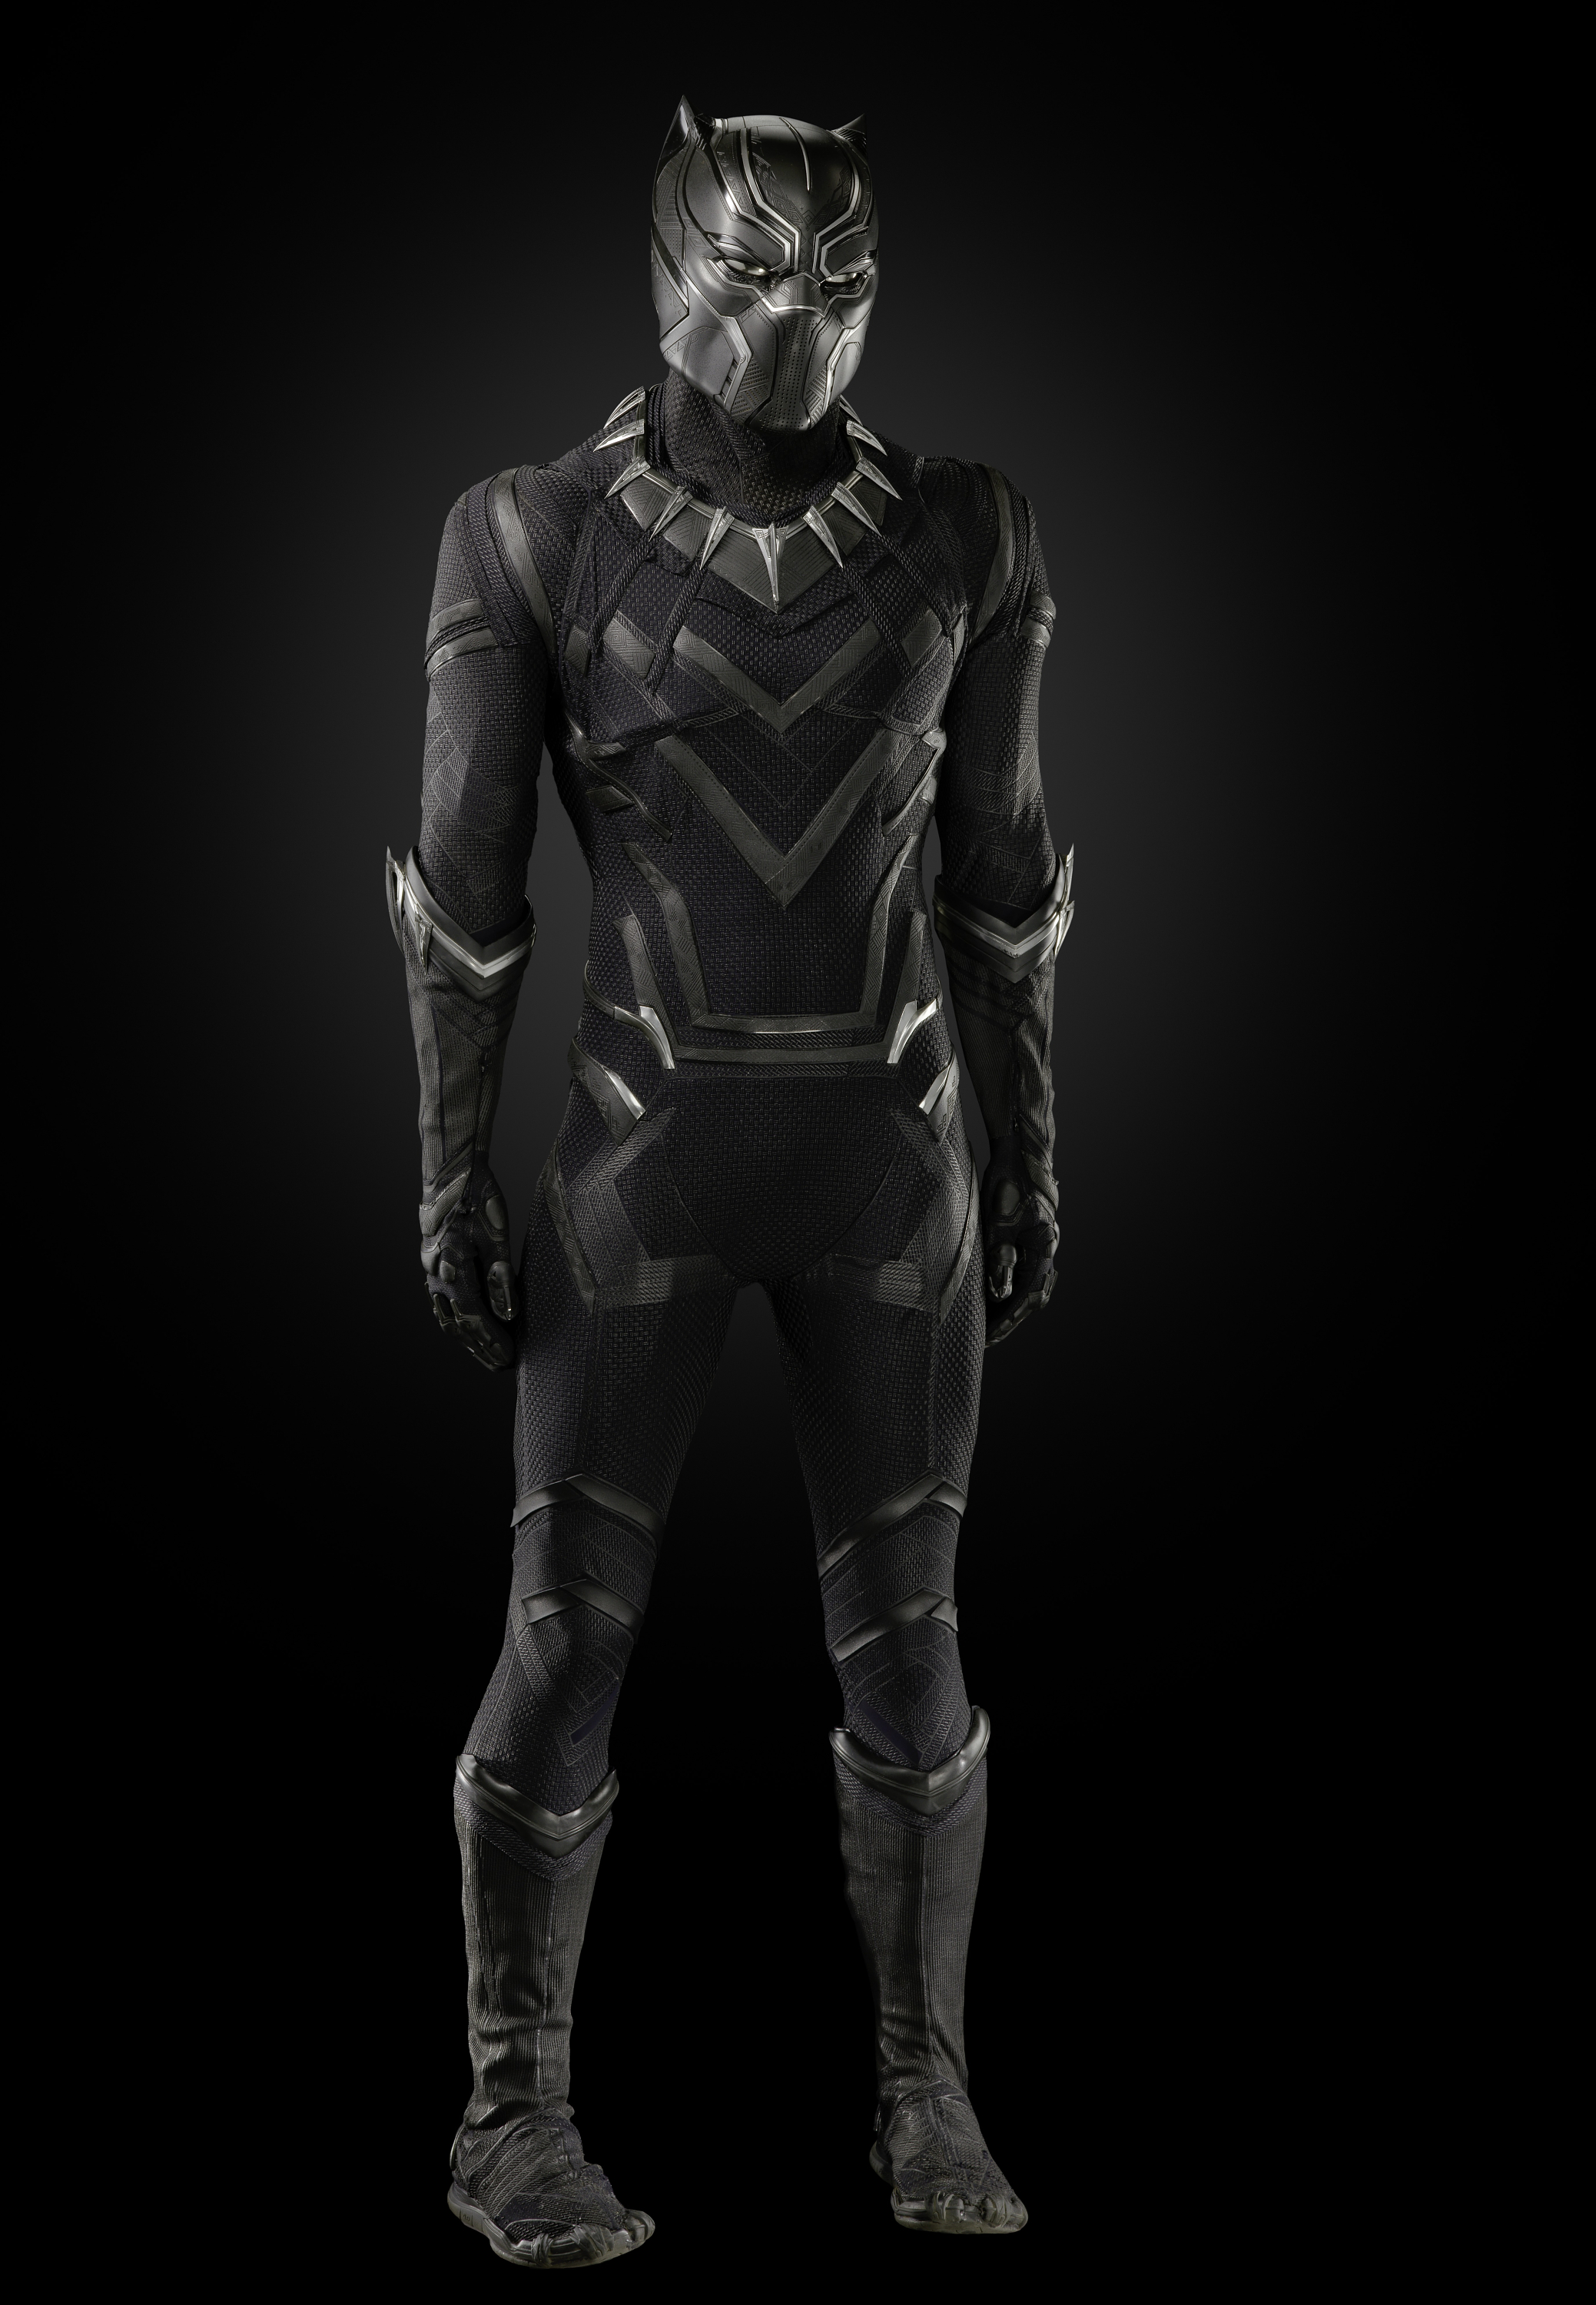 Black Panther Costume donated to the National Museum of African American History & Culture